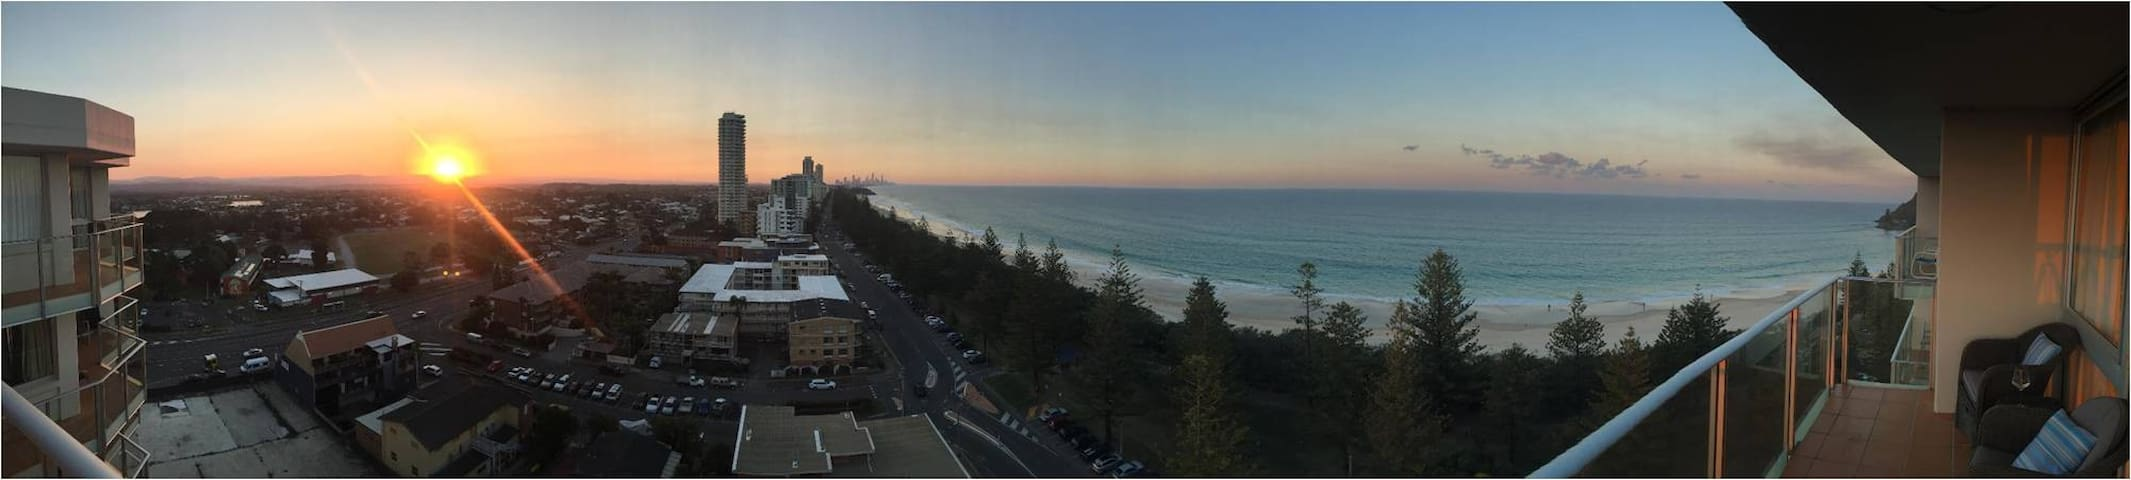 Panoramic view from the balcony at sunset